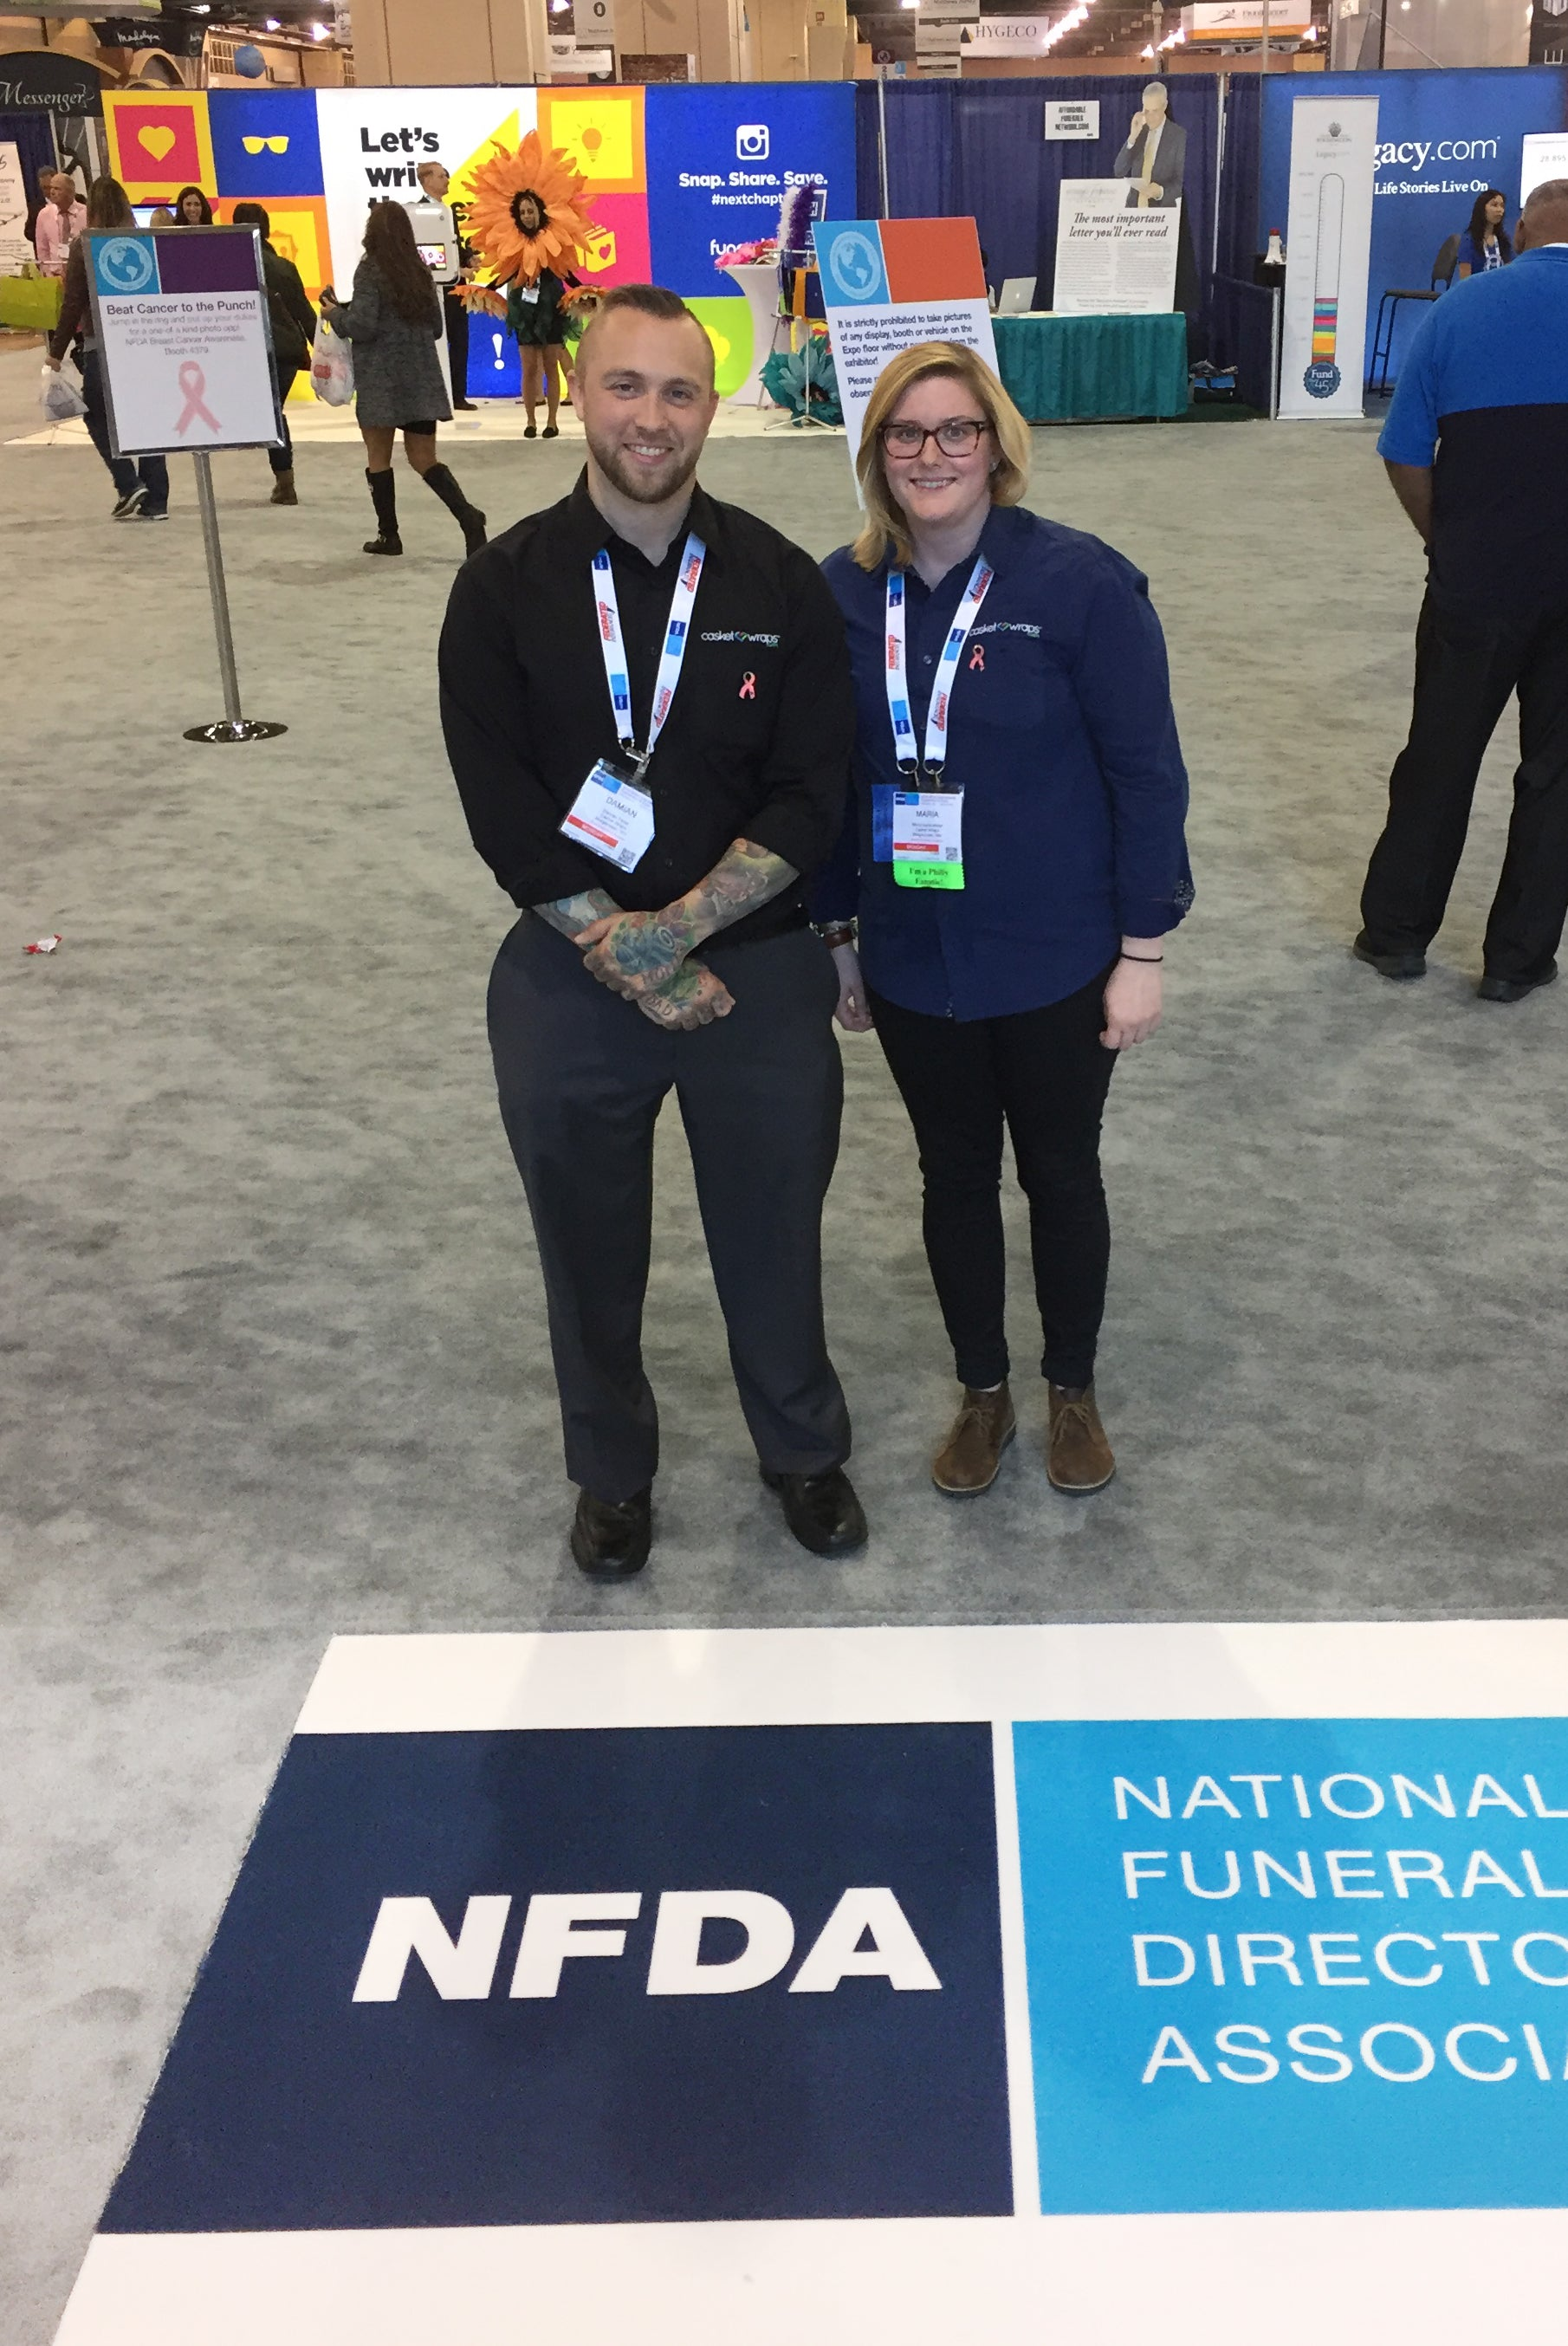 Our very own Damian and Maria at the 2016 NFDA Conference